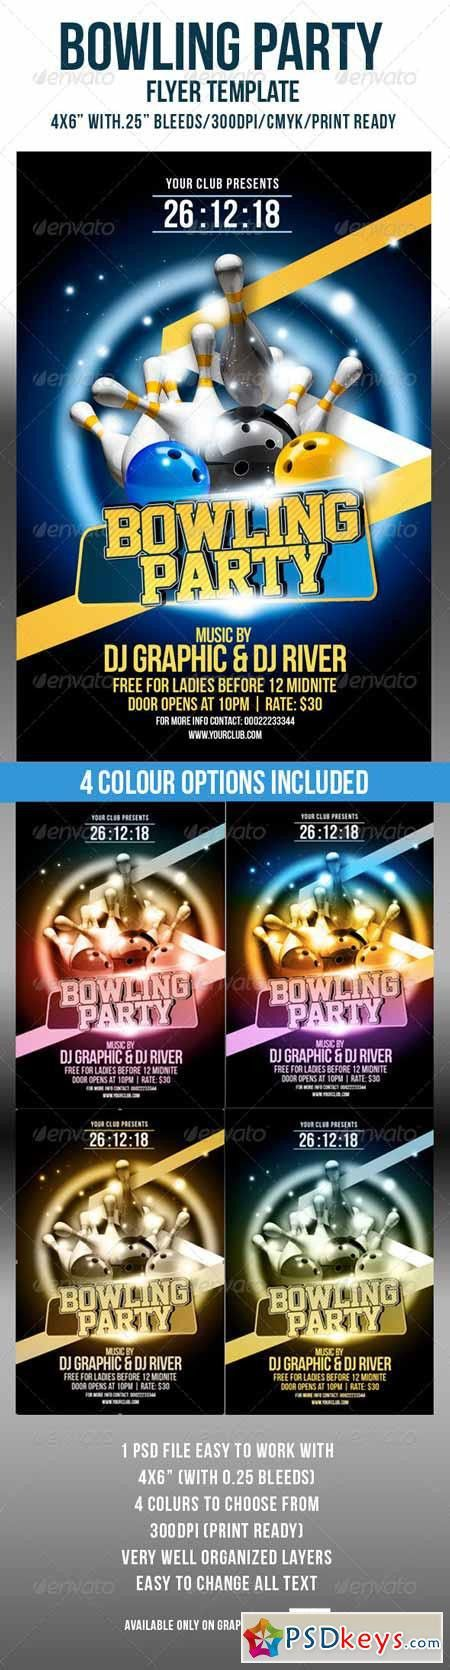 Bowling Party Flyer Template 4583827 » Free Download Photoshop ...